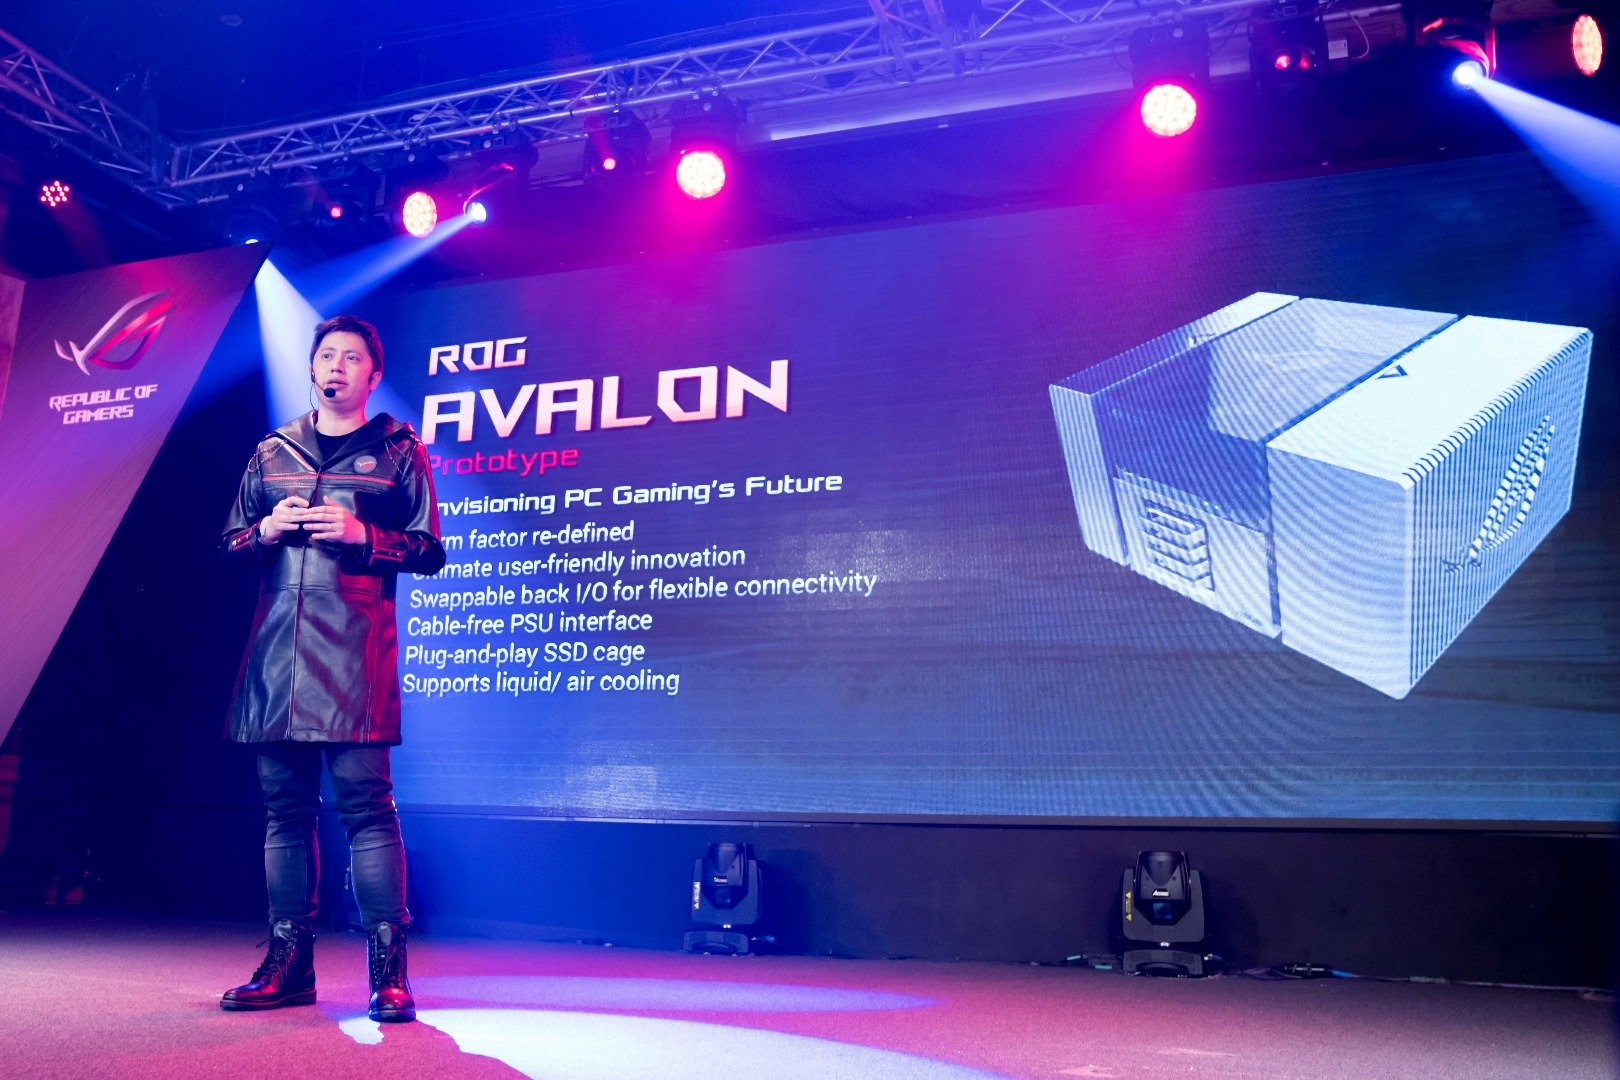 ROG Marketing Direct Derek Yu unveiled the ROG Avalon a prototype motherboardchassi